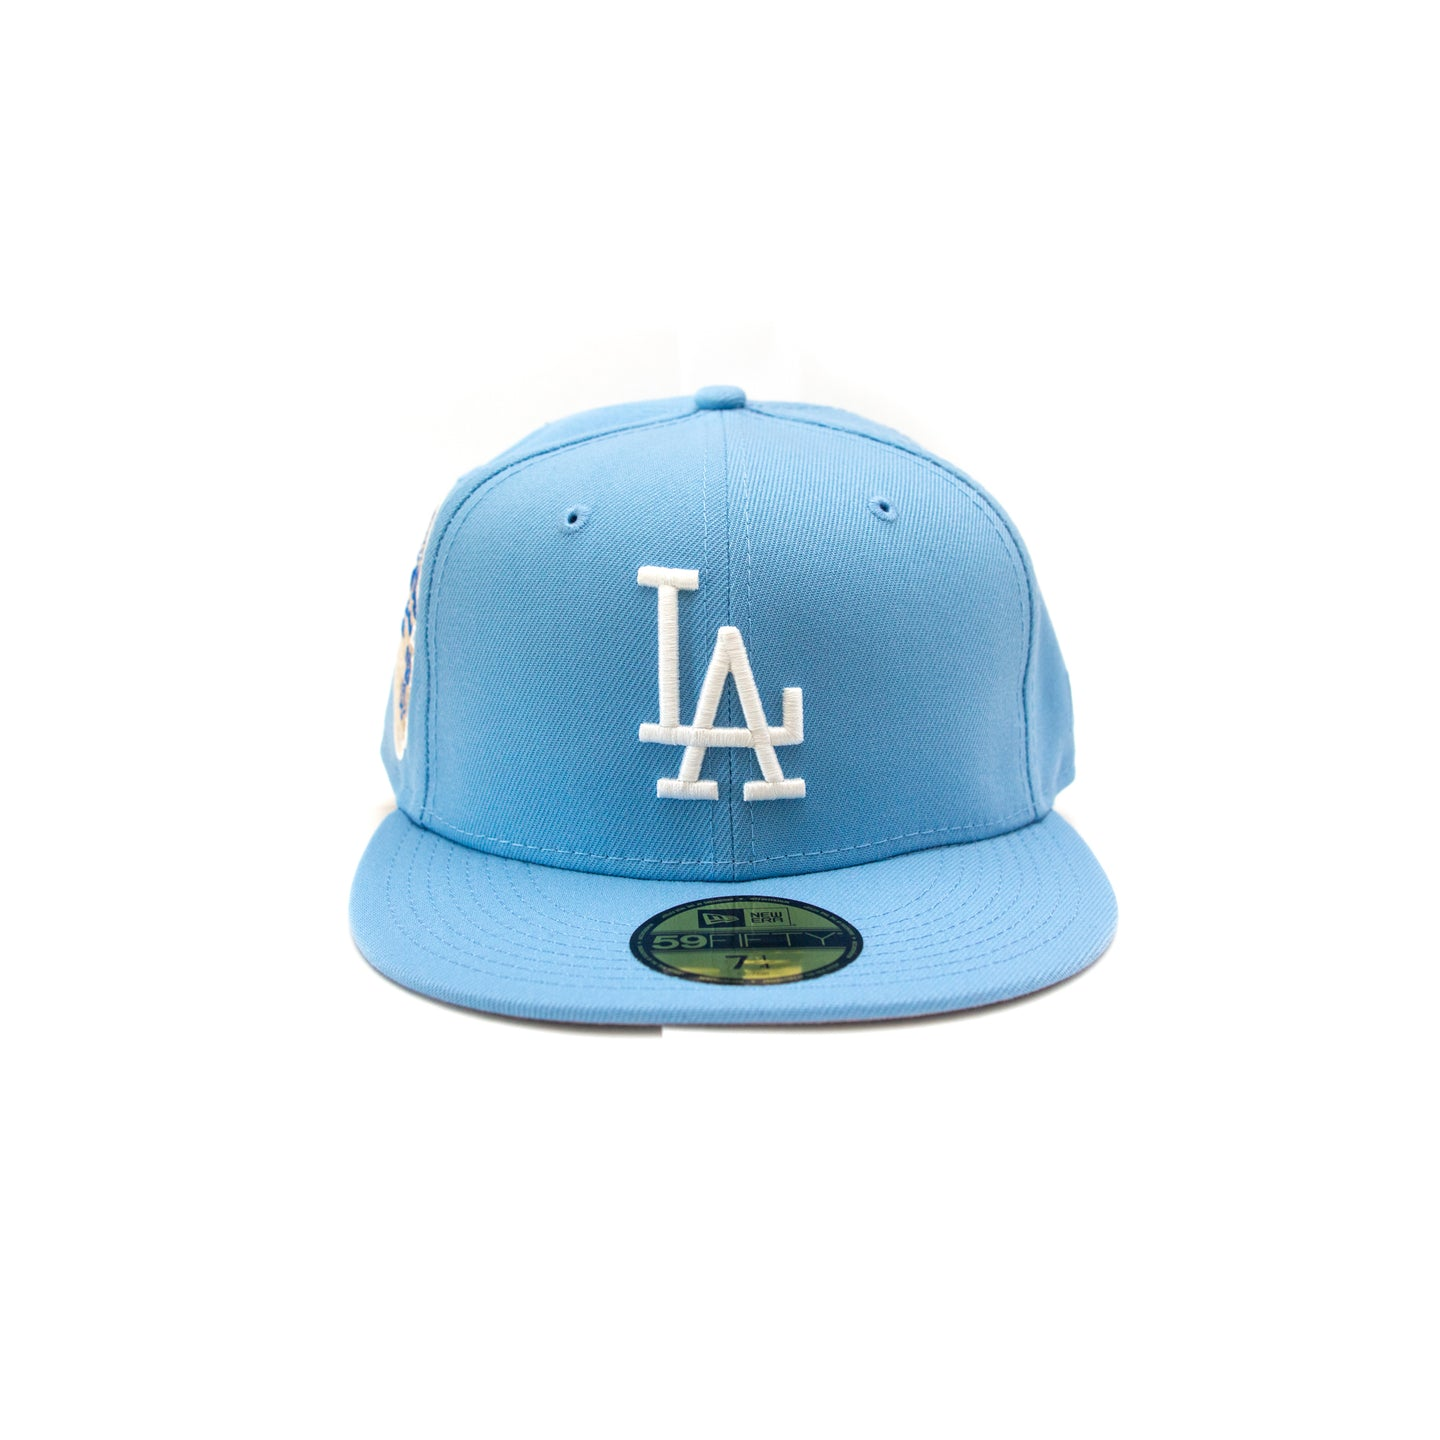 NEW ERA LA DODGERS CAP: BABY BLUE